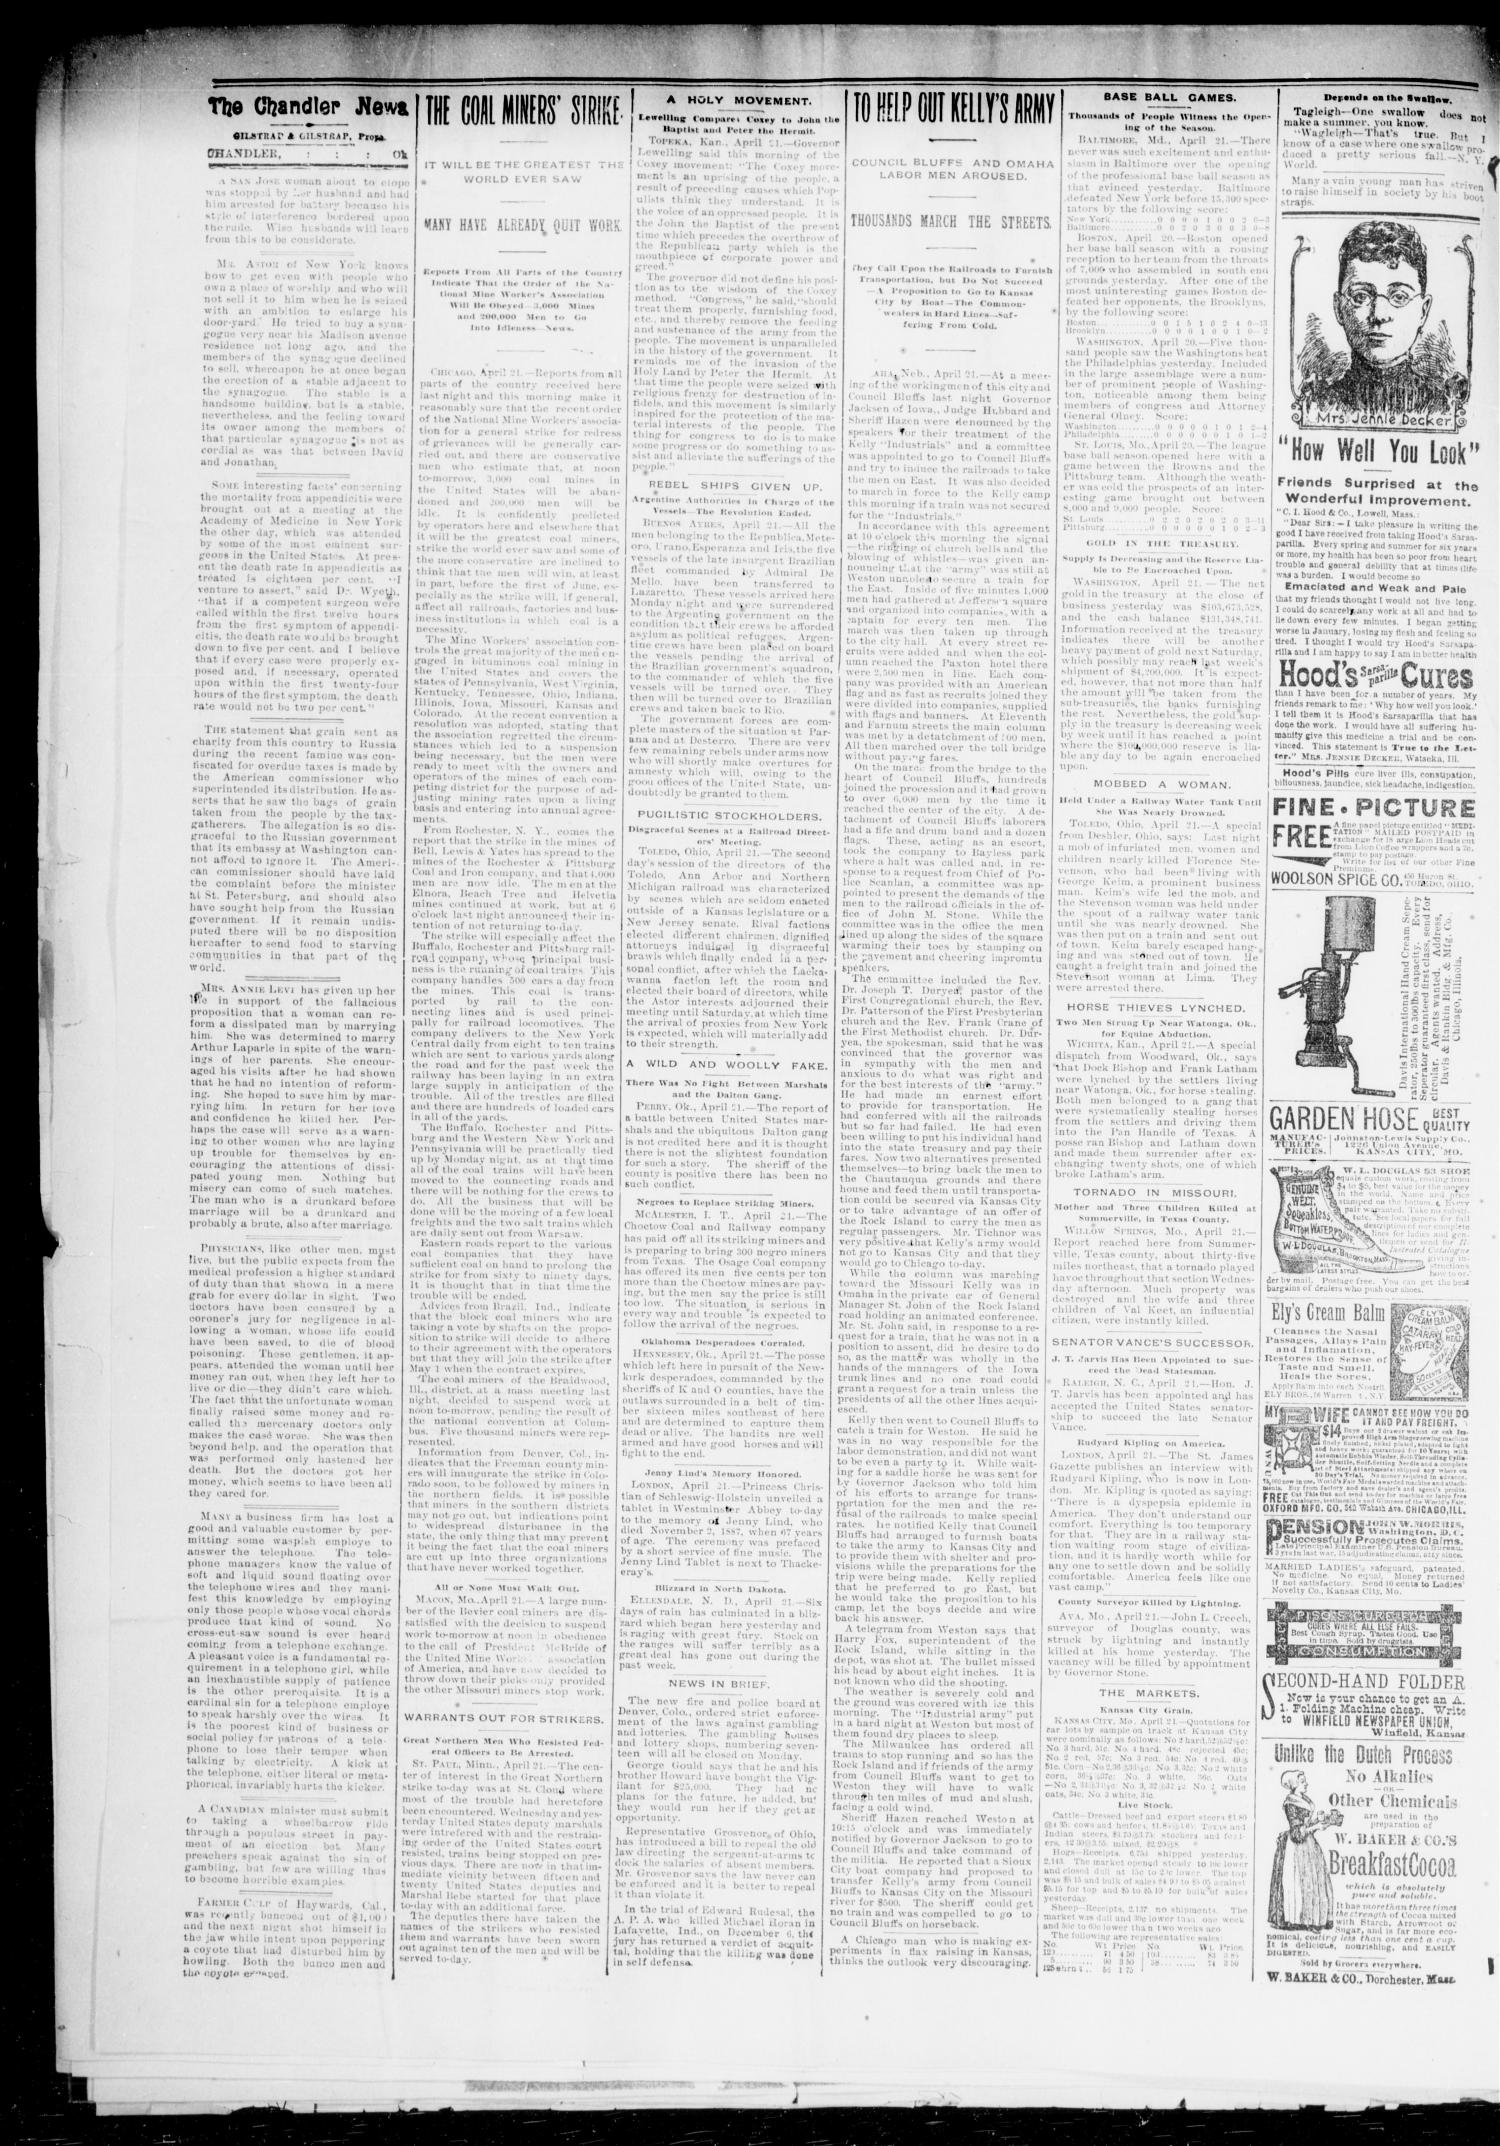 The Chandler News. (Chandler, Okla.), Vol. 3, No. 31, Ed. 1 Friday, April 27, 1894                                                                                                      [Sequence #]: 2 of 8